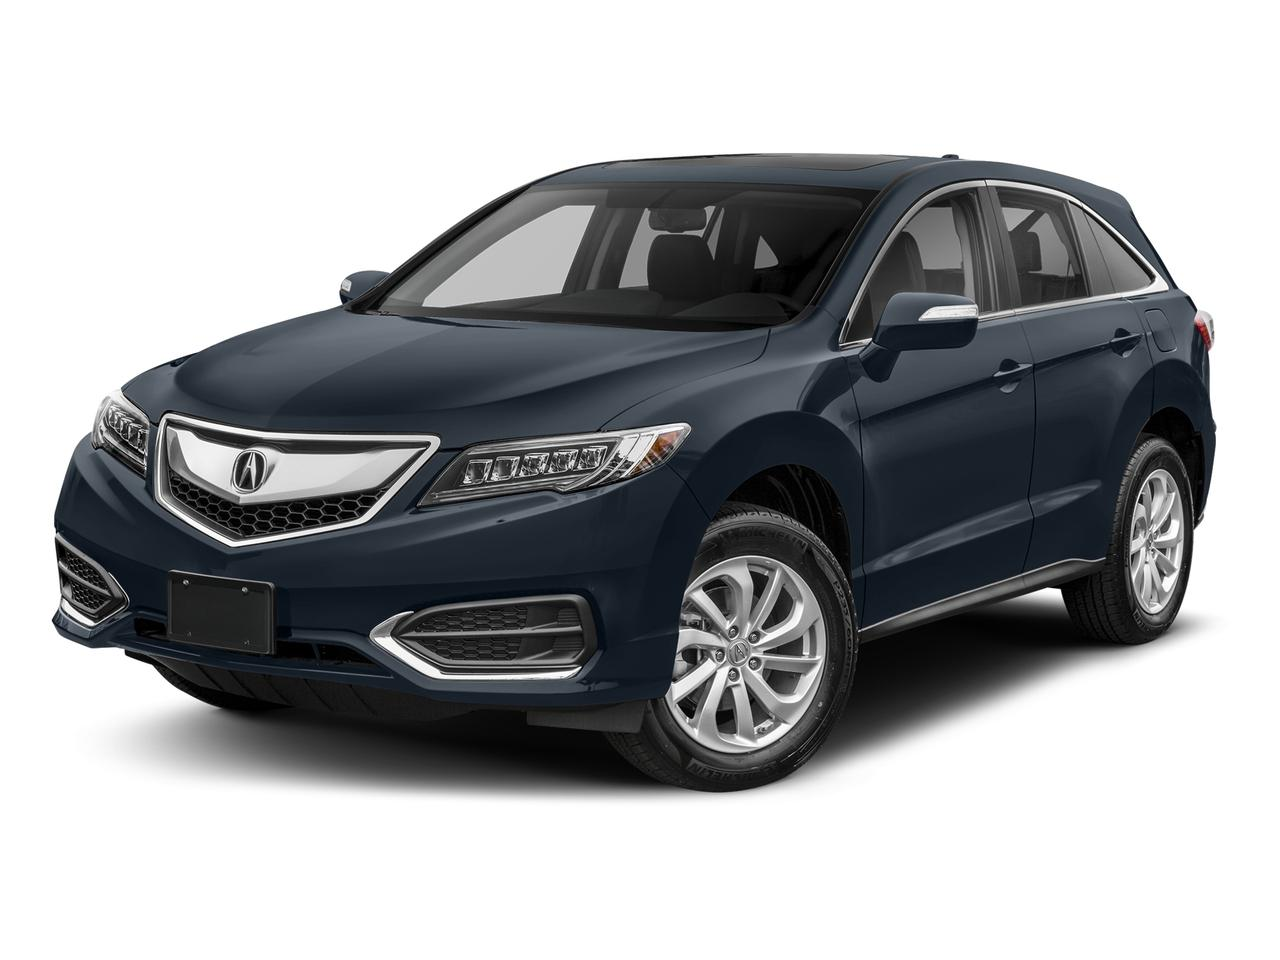 2018 Acura RDX Vehicle Photo in Trevose, PA 19053-4984